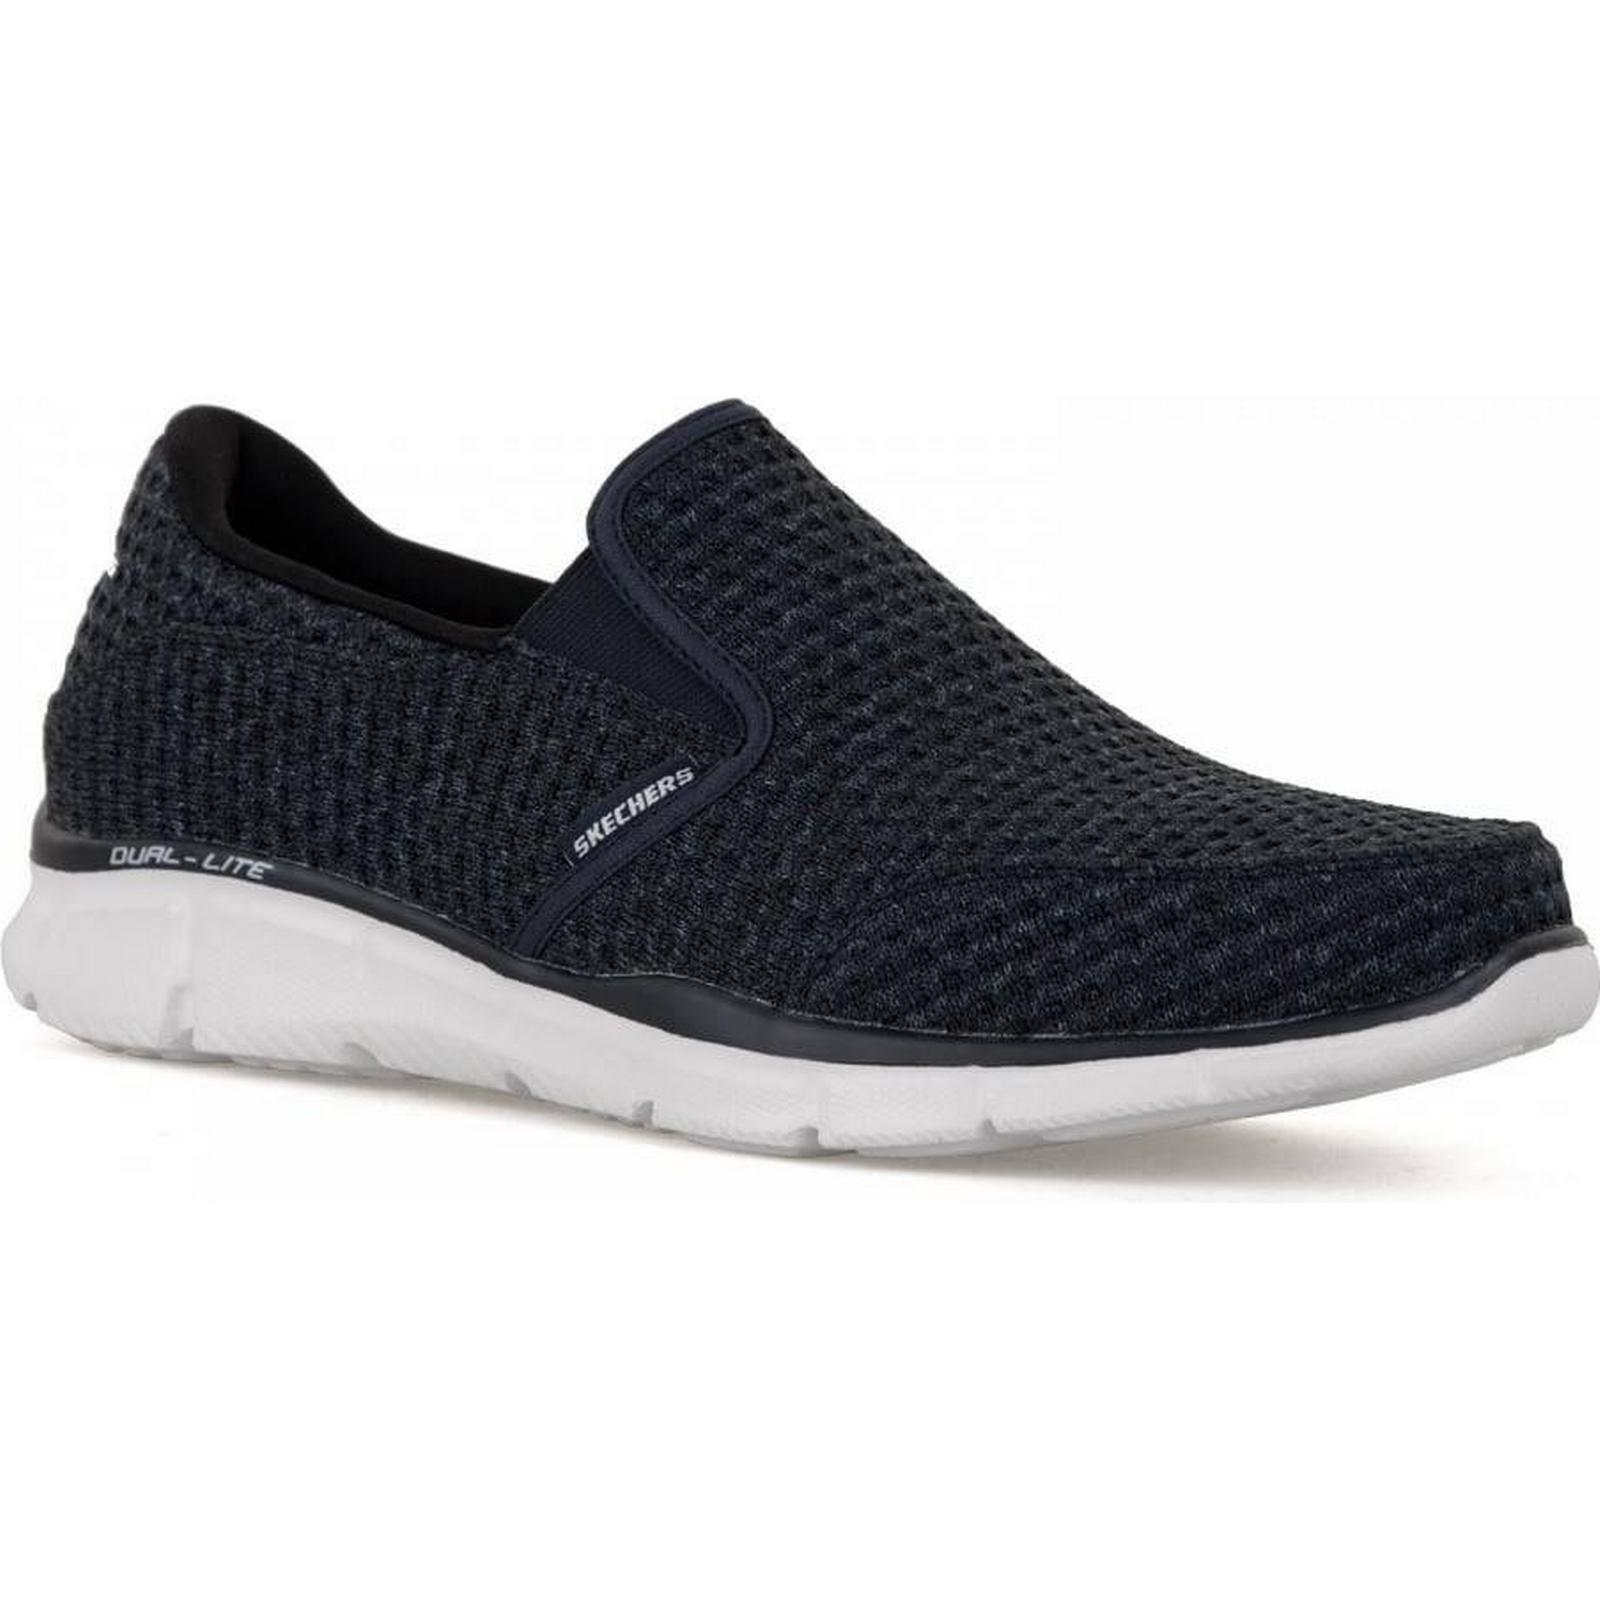 Skechers (Navy) Mens Equaliser Slickster Trainers (Navy) Skechers Size: 11, Colour: NA 1b170d